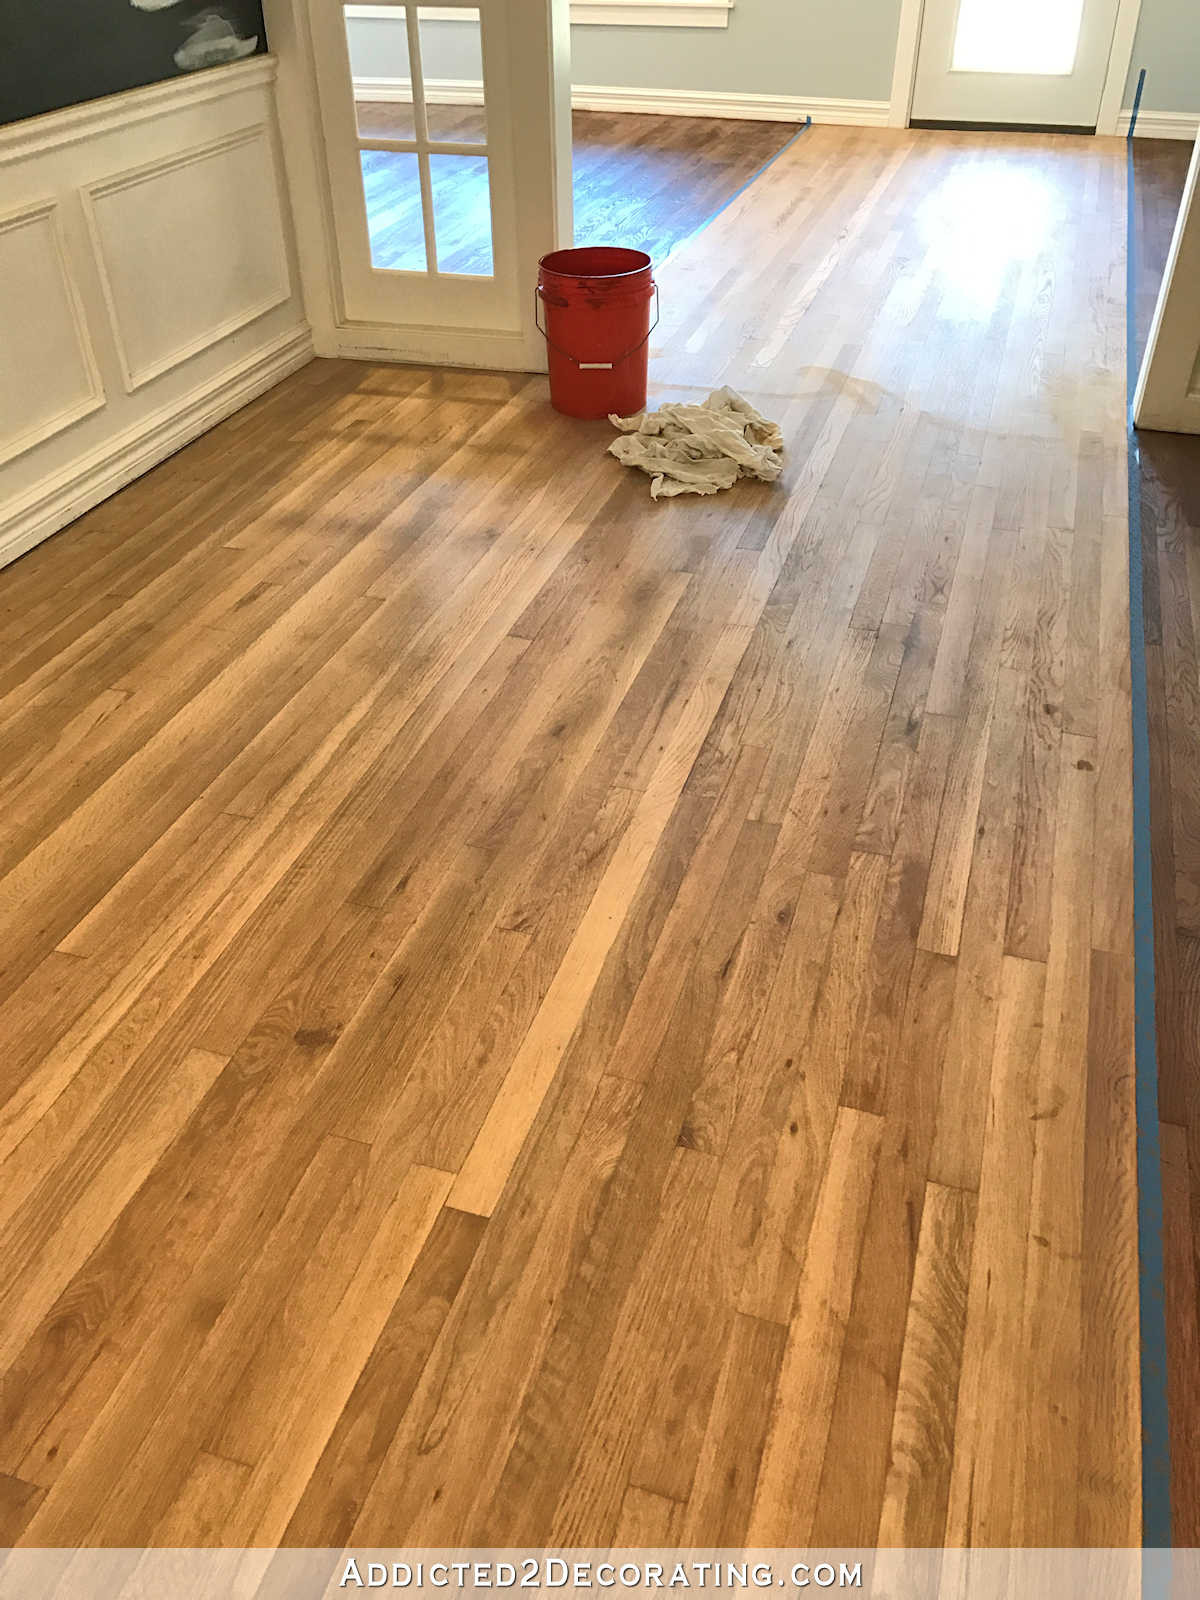 hardwood floor stain repair of adventures in staining my red oak hardwood floors products process regarding staining red oak hardwood floors 8 entryway and music room wood conditioner